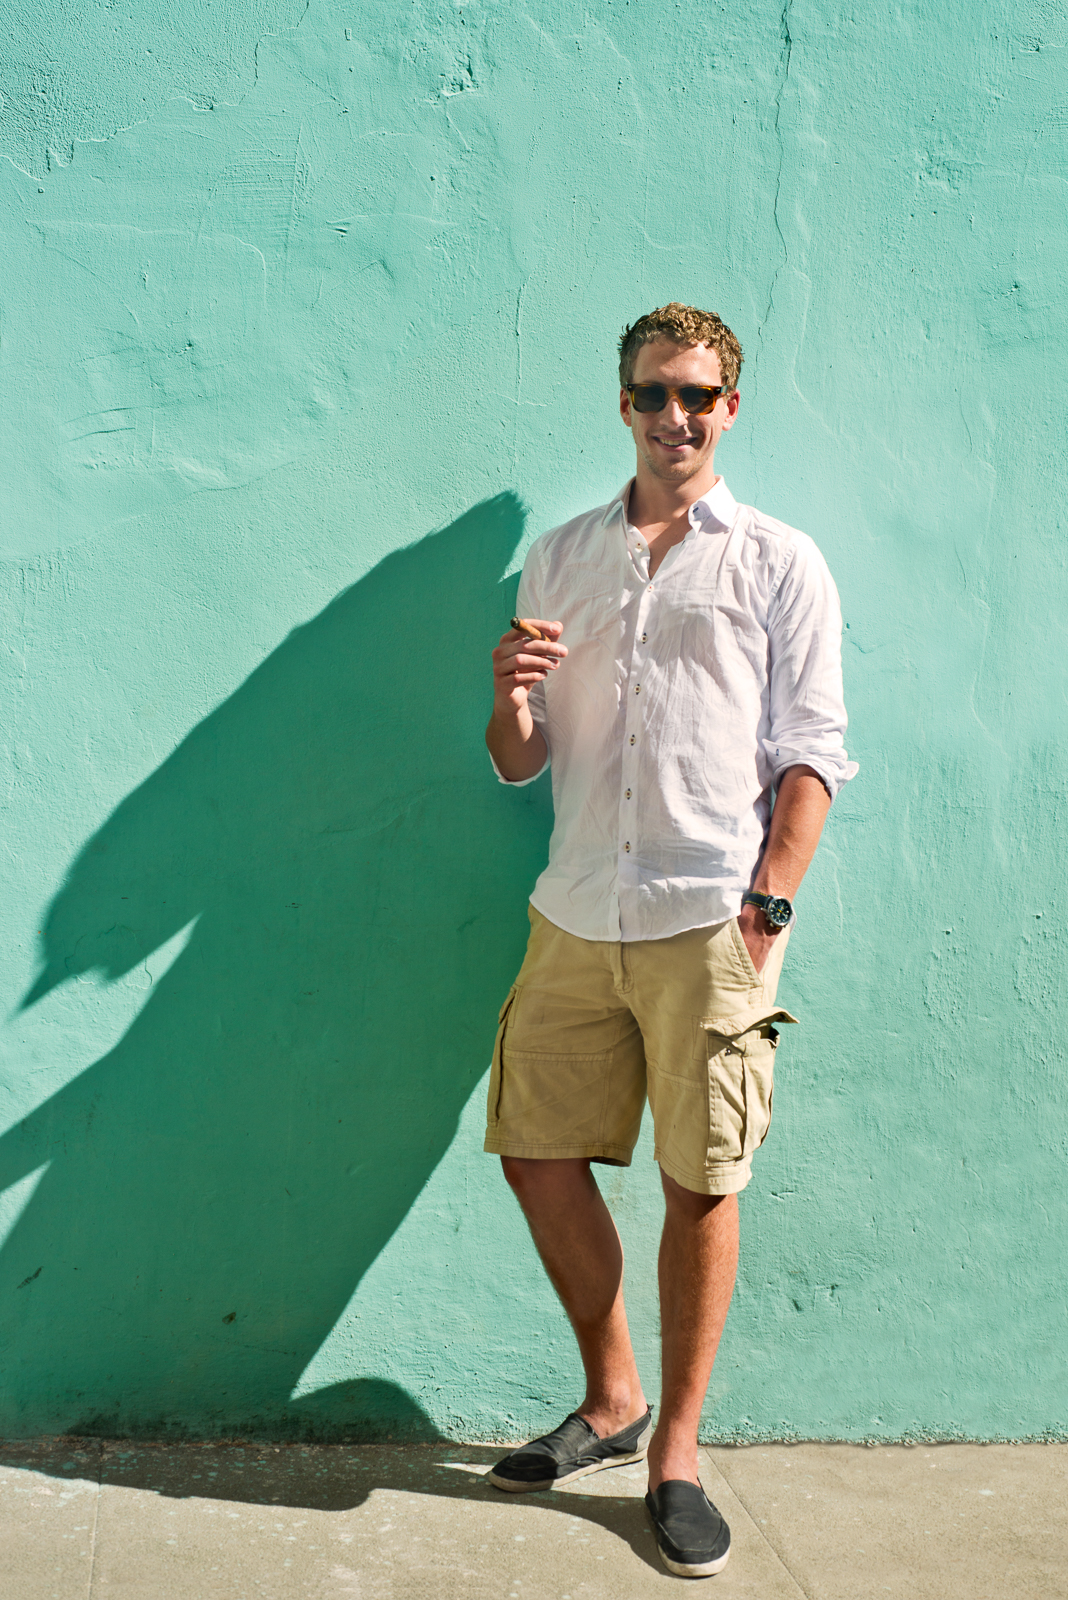 Cuban tourist with a cigar, leaning against a mint green wall